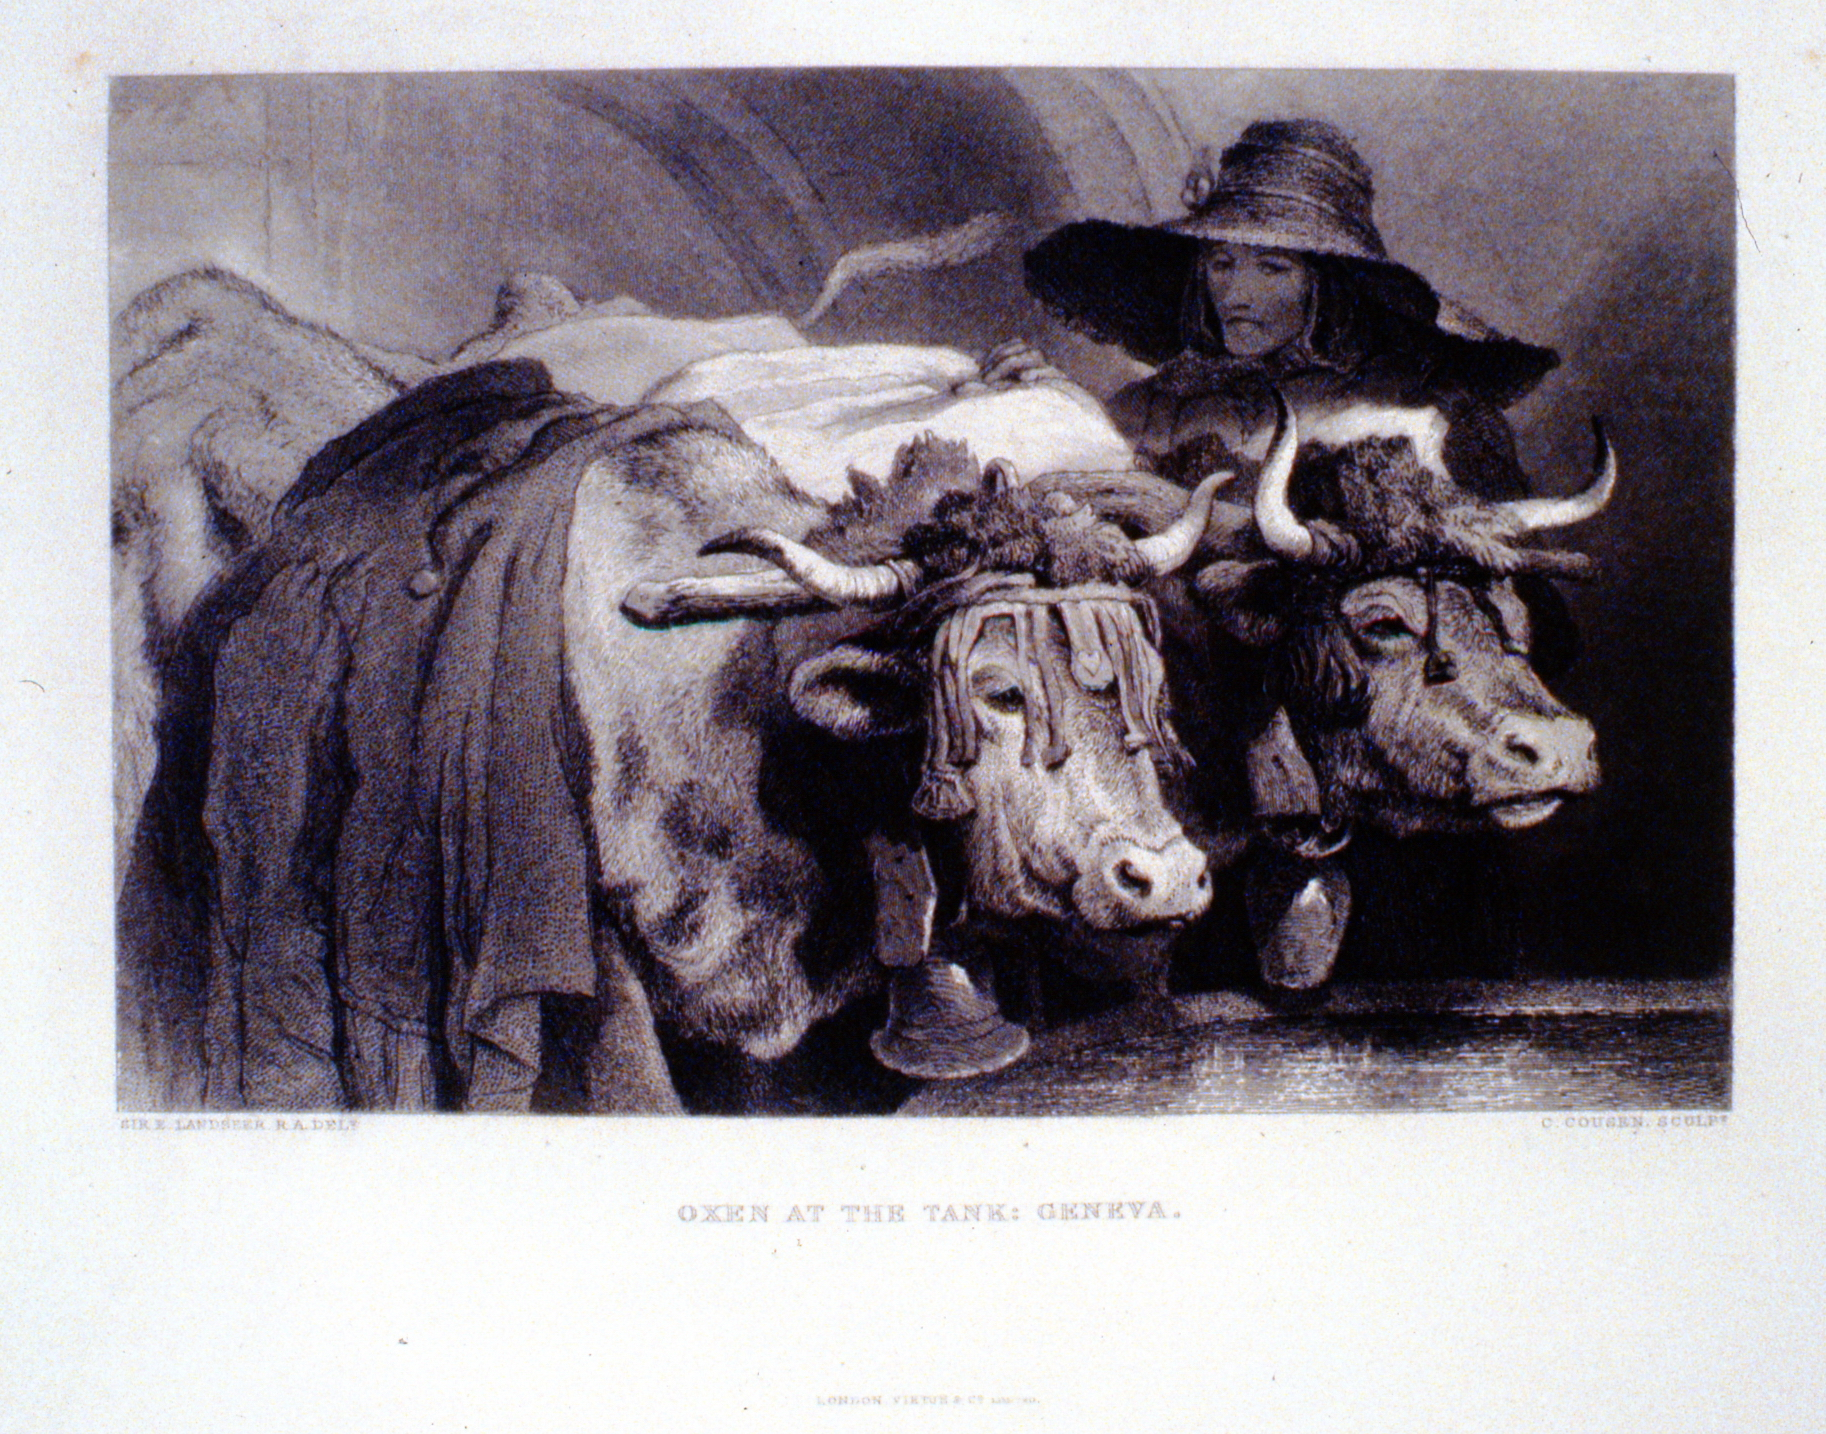 Oxen at the Tank: Geneva ,c. late 19th Century, C. Cousen, steel engraving, 15.5 cm x 24.8 cm, 1996.08.08, gift of Yvonne Adams